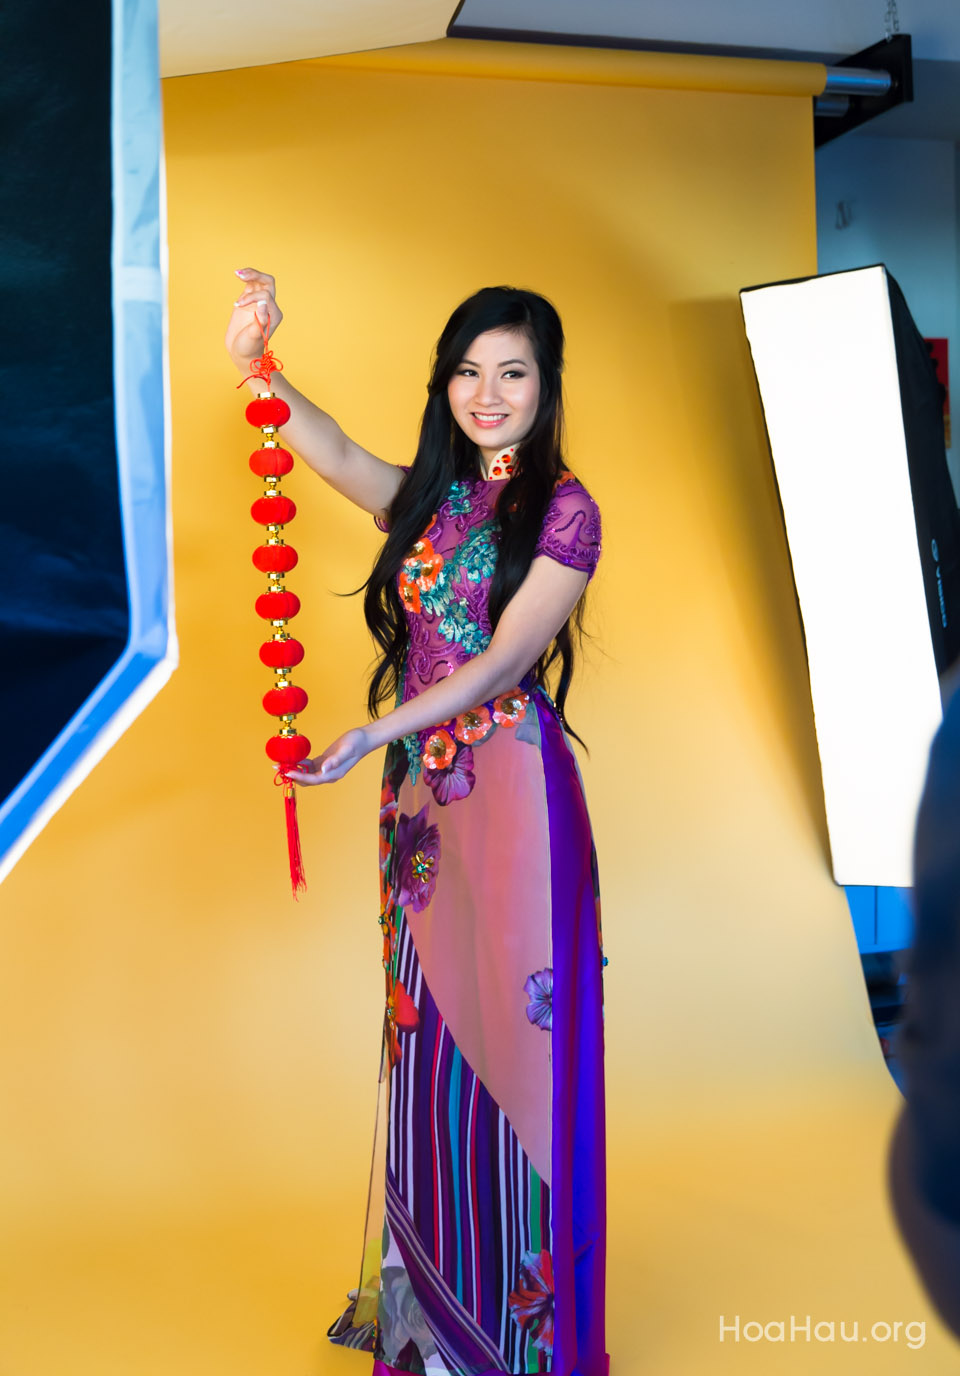 Calendar 2014 Photoshoot - Miss Vietnam of Northern California 2014 - Image 114